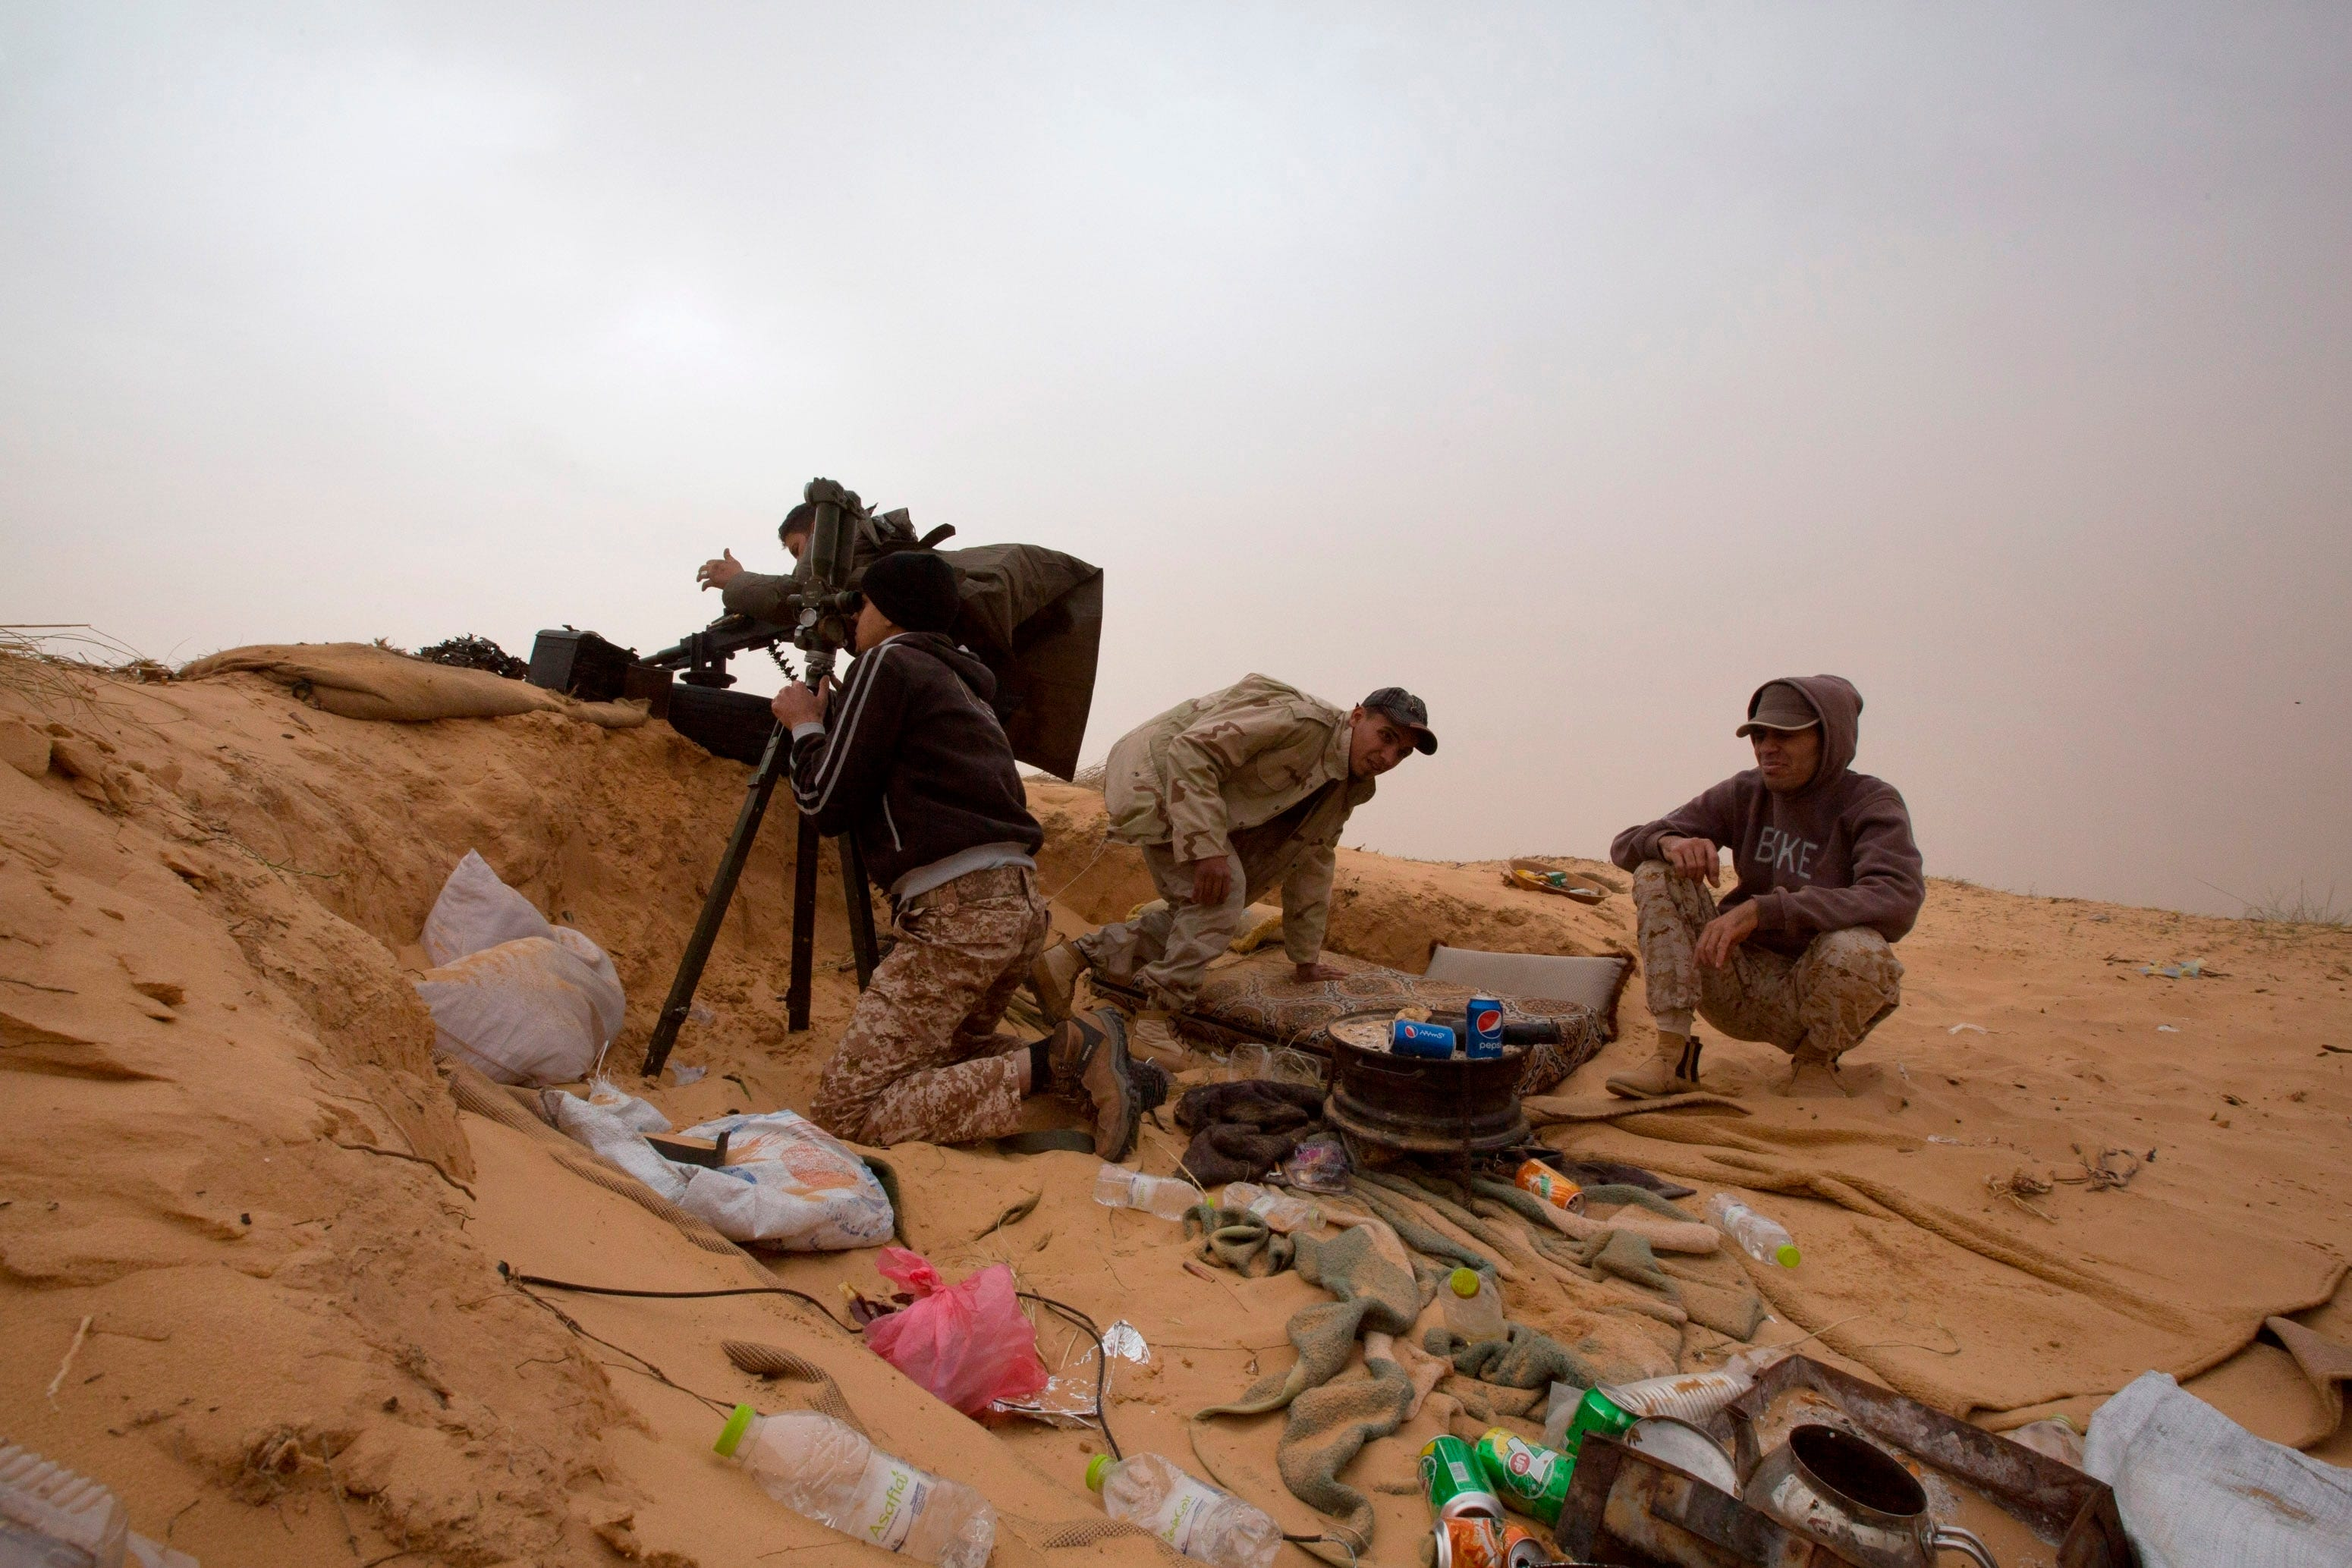 FILE - In this Saturday, Feb. 21, 2015 file photo, Libyan soldiers aim their weapons during clashes with militants on the frontline in Al Ajaylat, 120 kilometers (75 miles) west of Tripoli, Libya. The work of photographer and video journalist Mohamed Ben Khalifa, who was killed in Libya on Saturday, Jan. 19, 2019, reflected Libya's post-2011 chaos of rival militias fighting for control as well as the humanitarian tragedy of waves of people fleeing North Africa, the Middle East and sub-Saharan Africa.